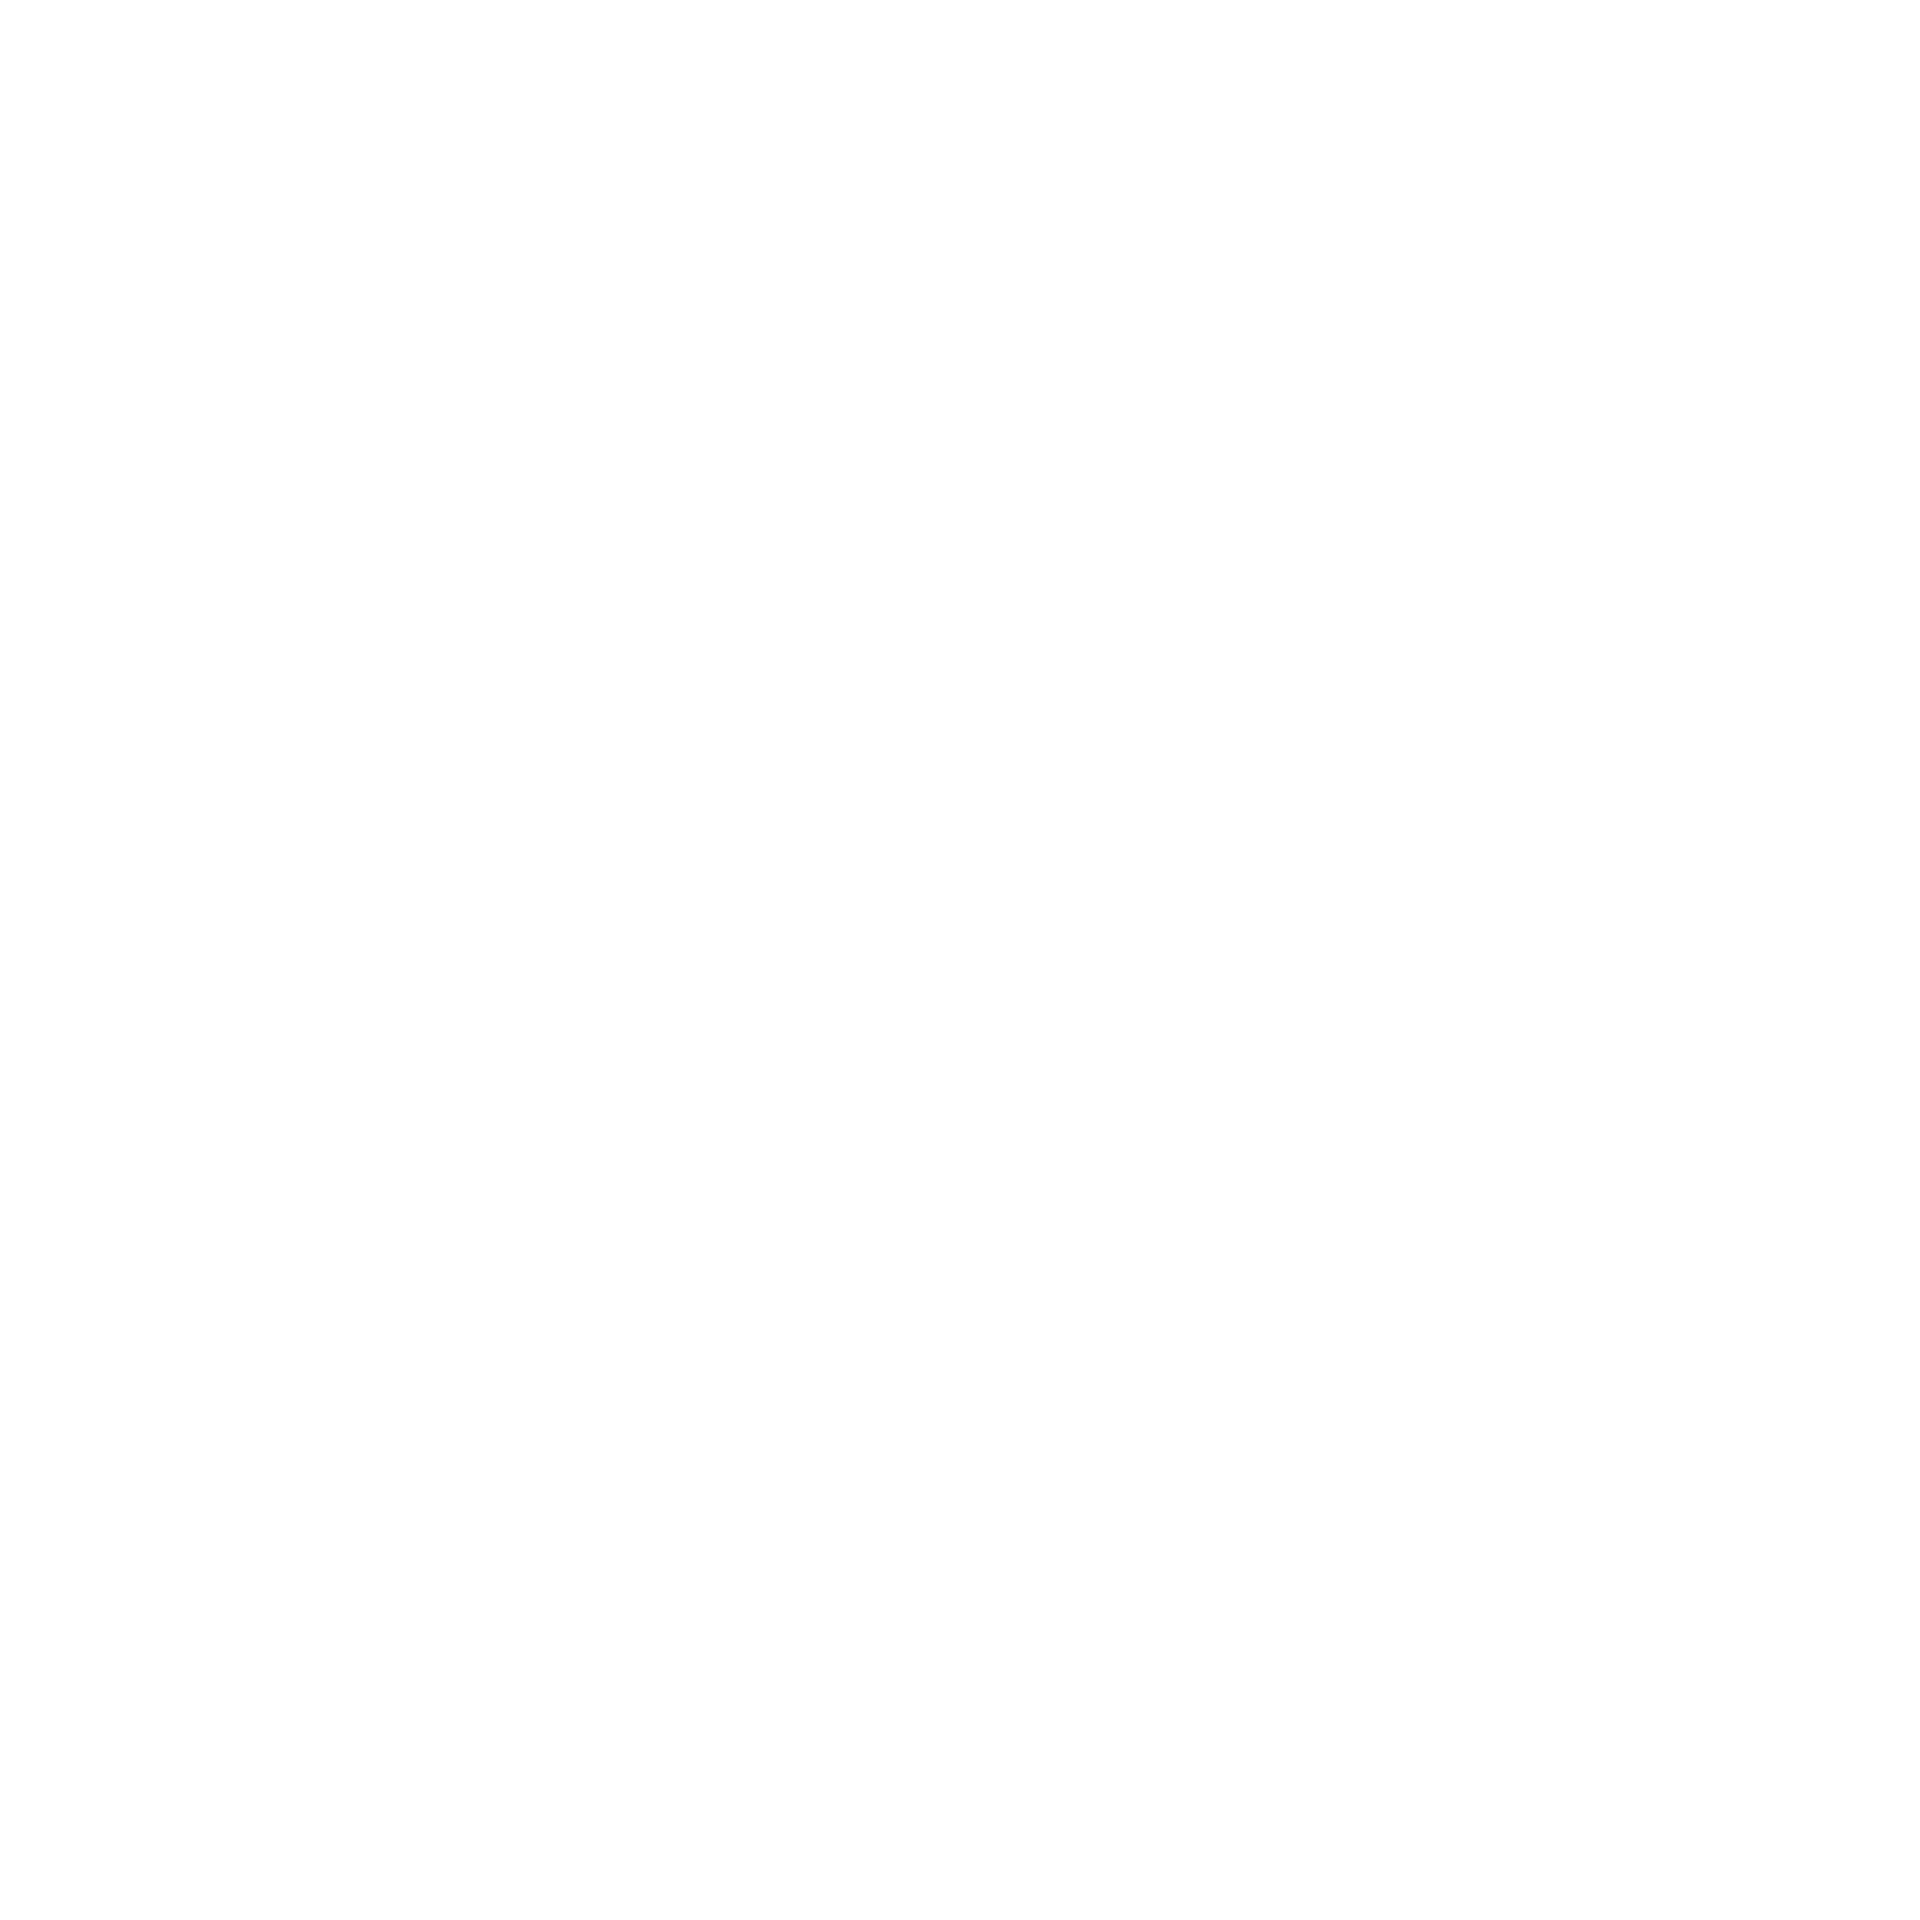 OCCHC Stepping Up - Celebrating 40 years